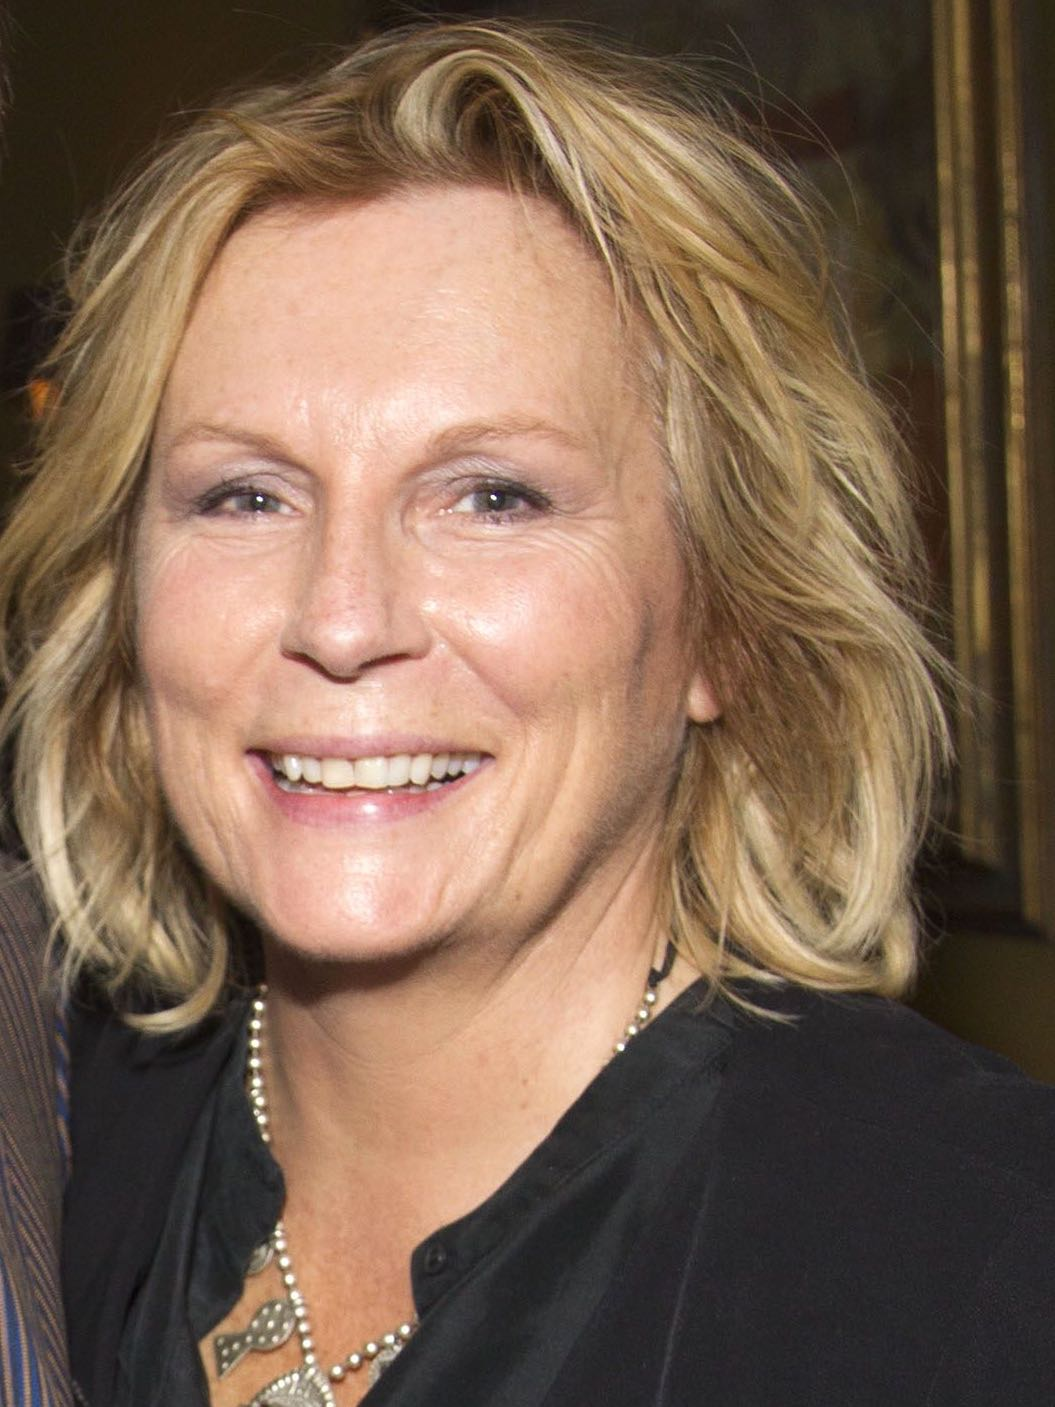 Jennifer Saunders (born 1958) nudes (18 photos), Tits, Fappening, Twitter, braless 2006